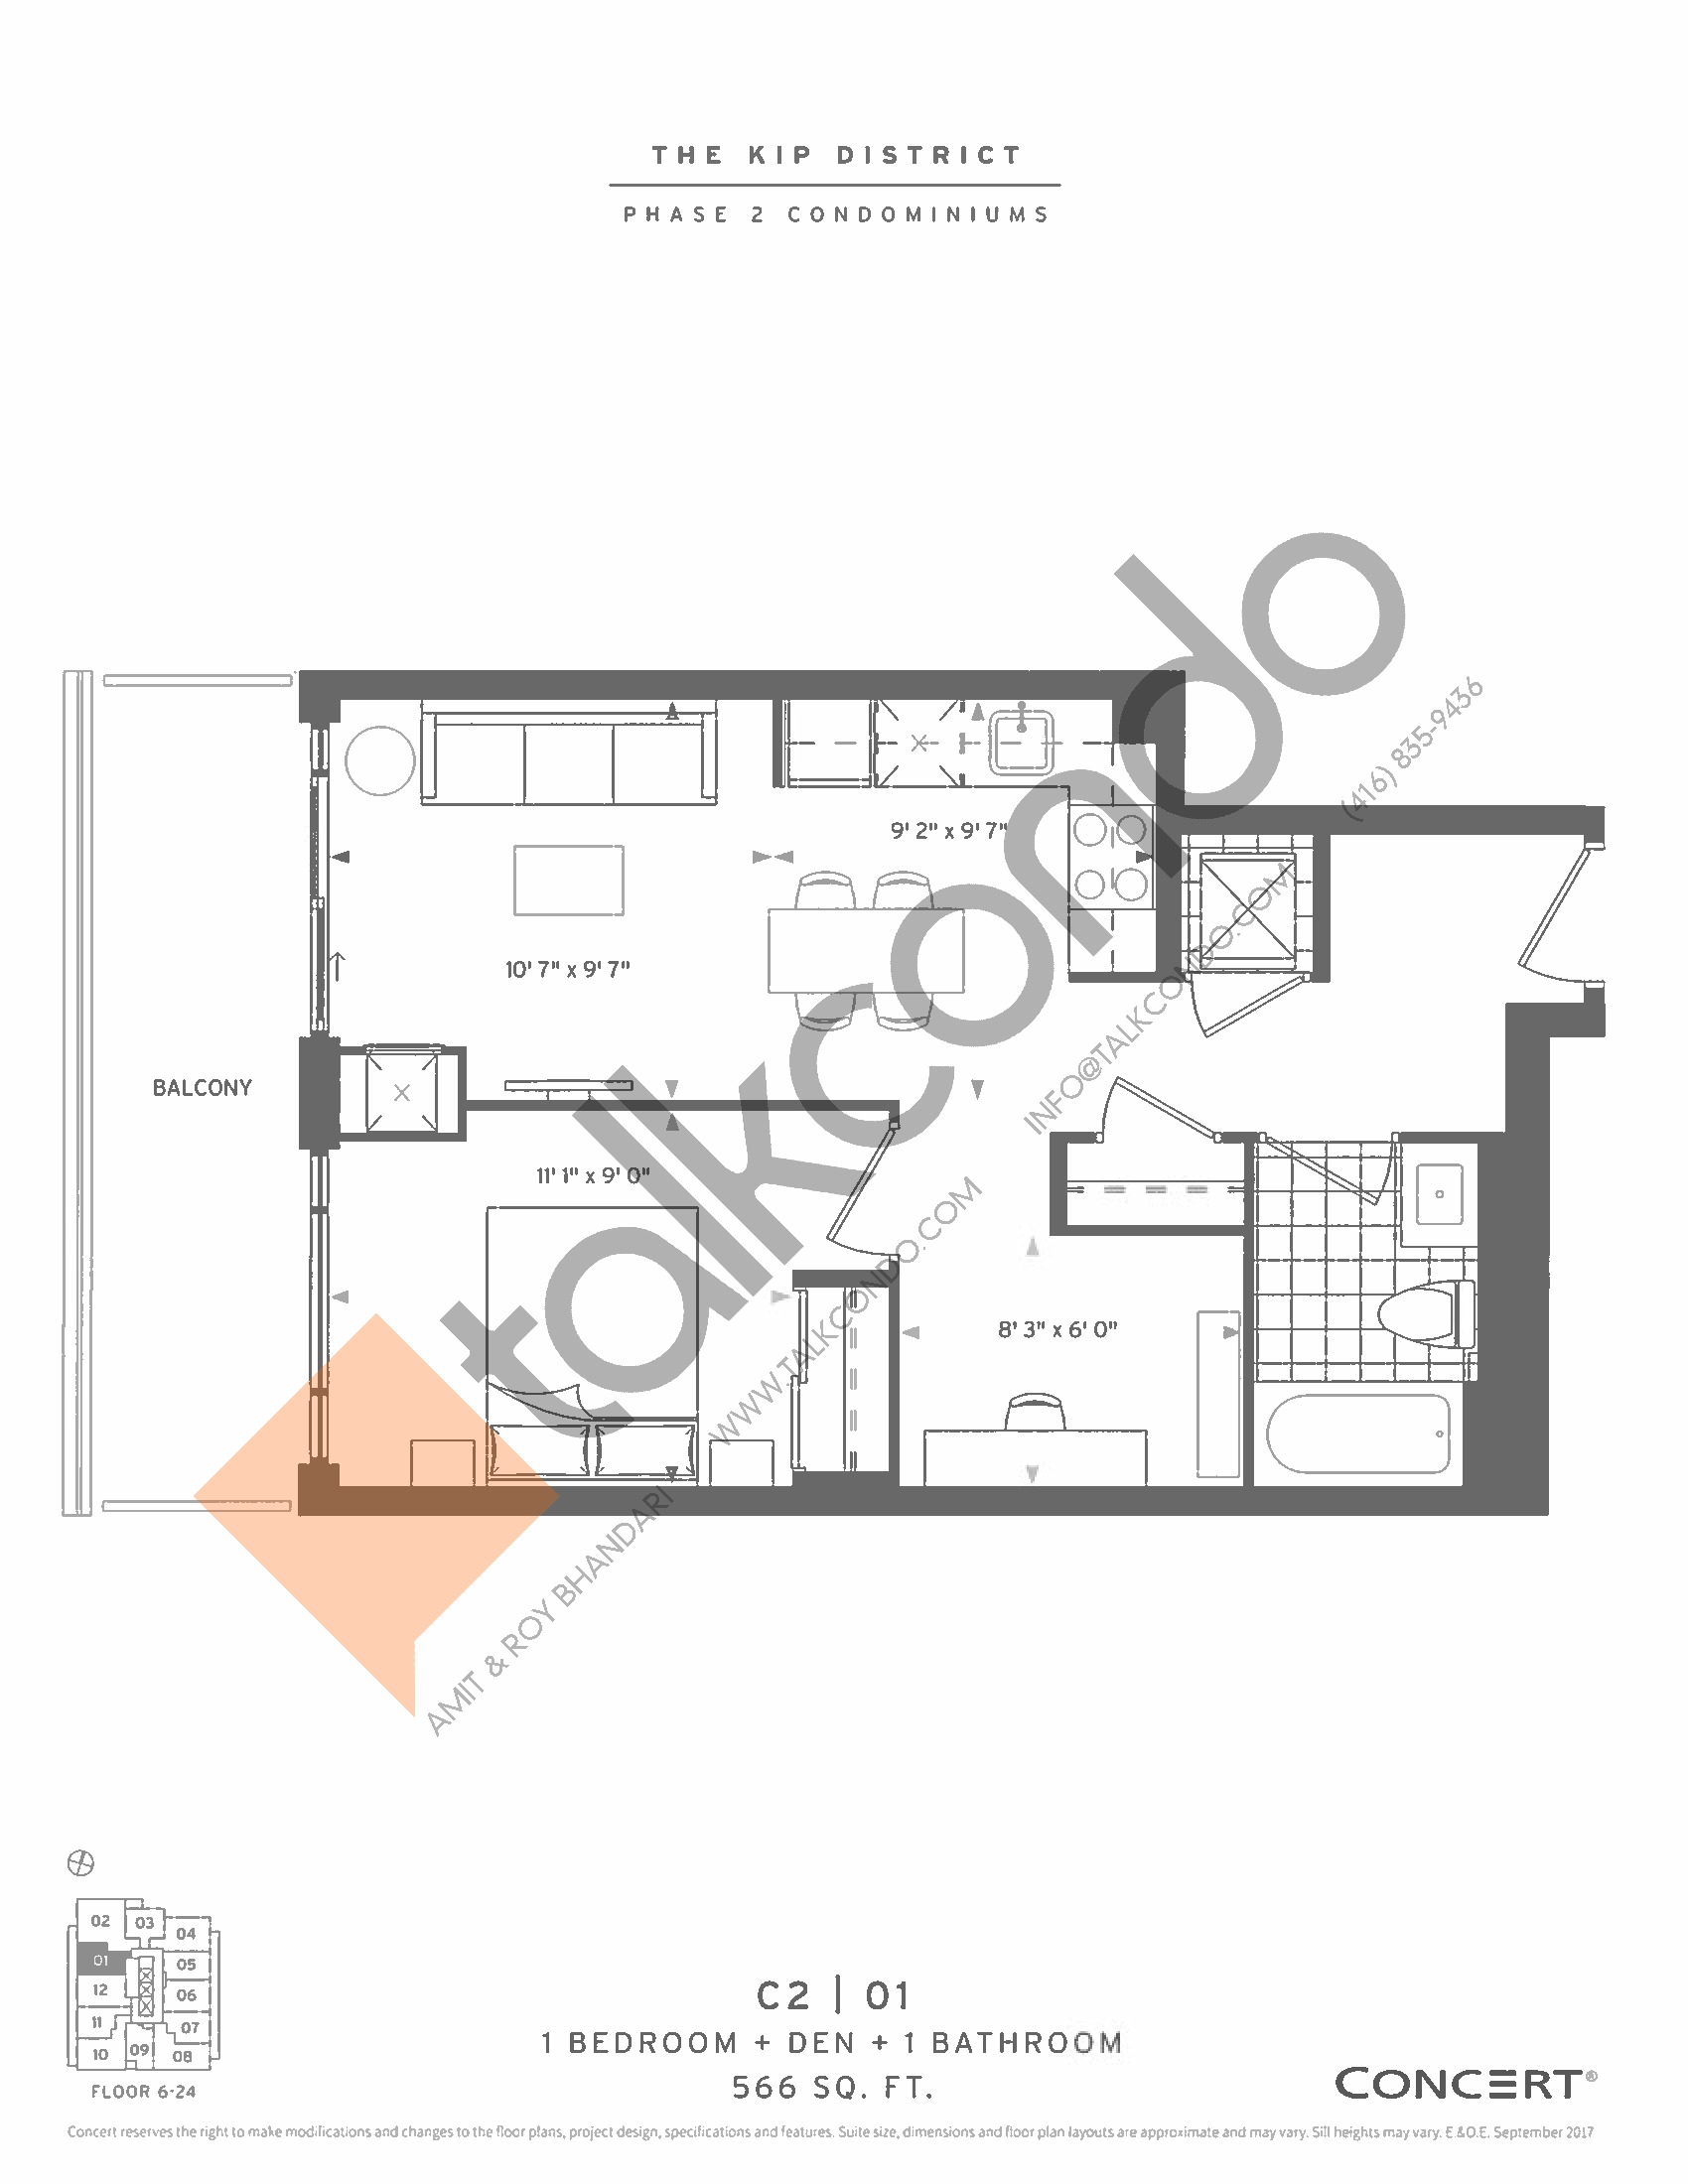 C2 | 01 Floor Plan at The Kip District Phase 2 Condos - 566 sq.ft